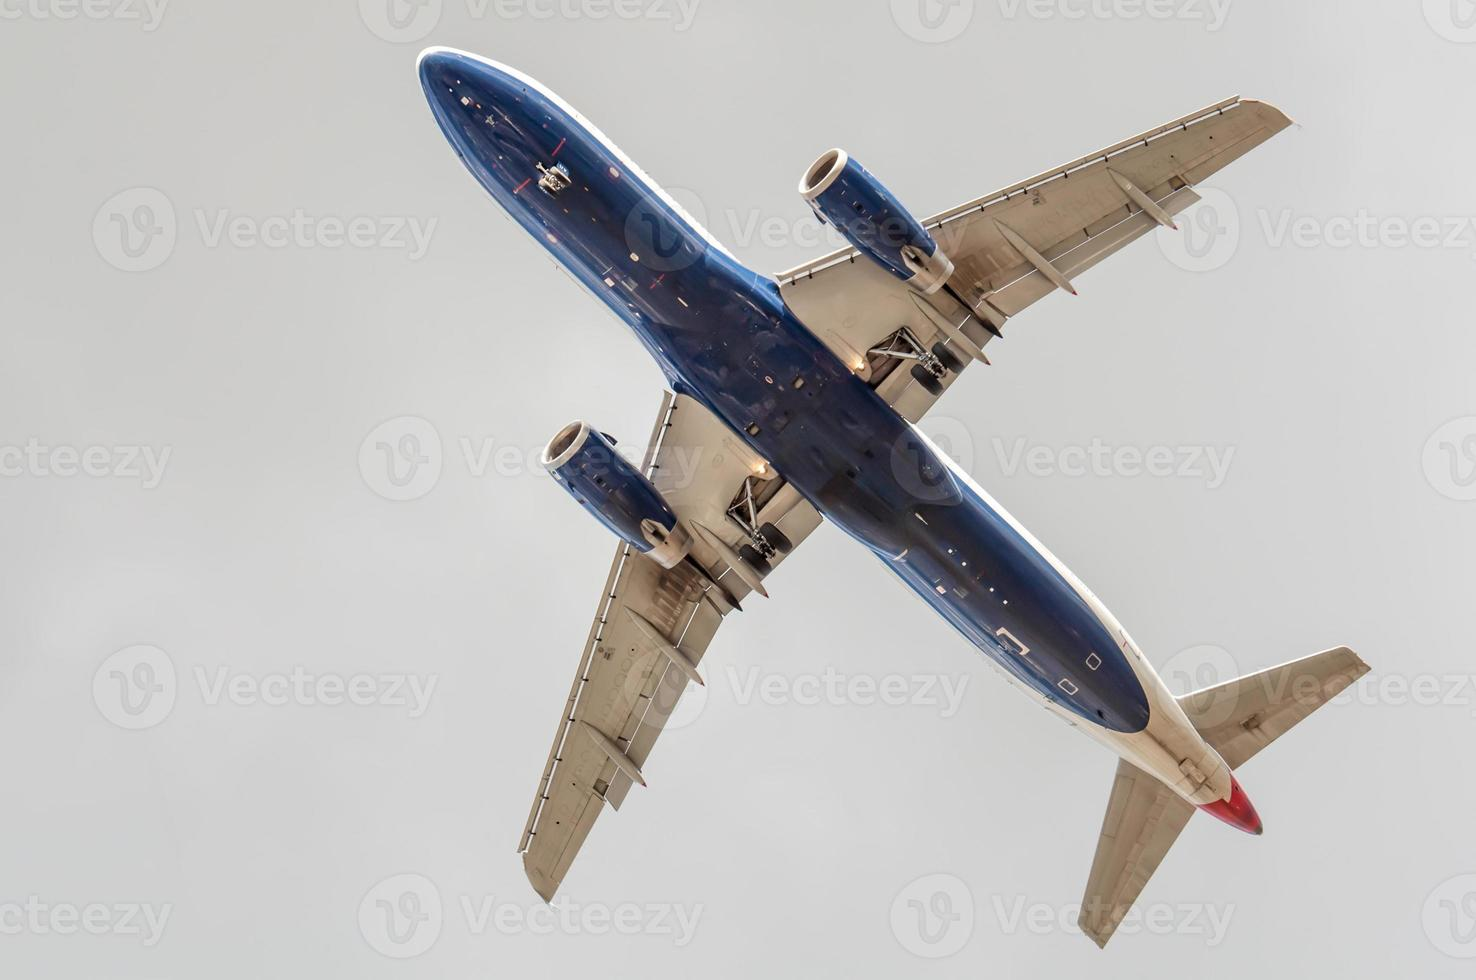 Big airplane in the sky - Passenger Airliner photo